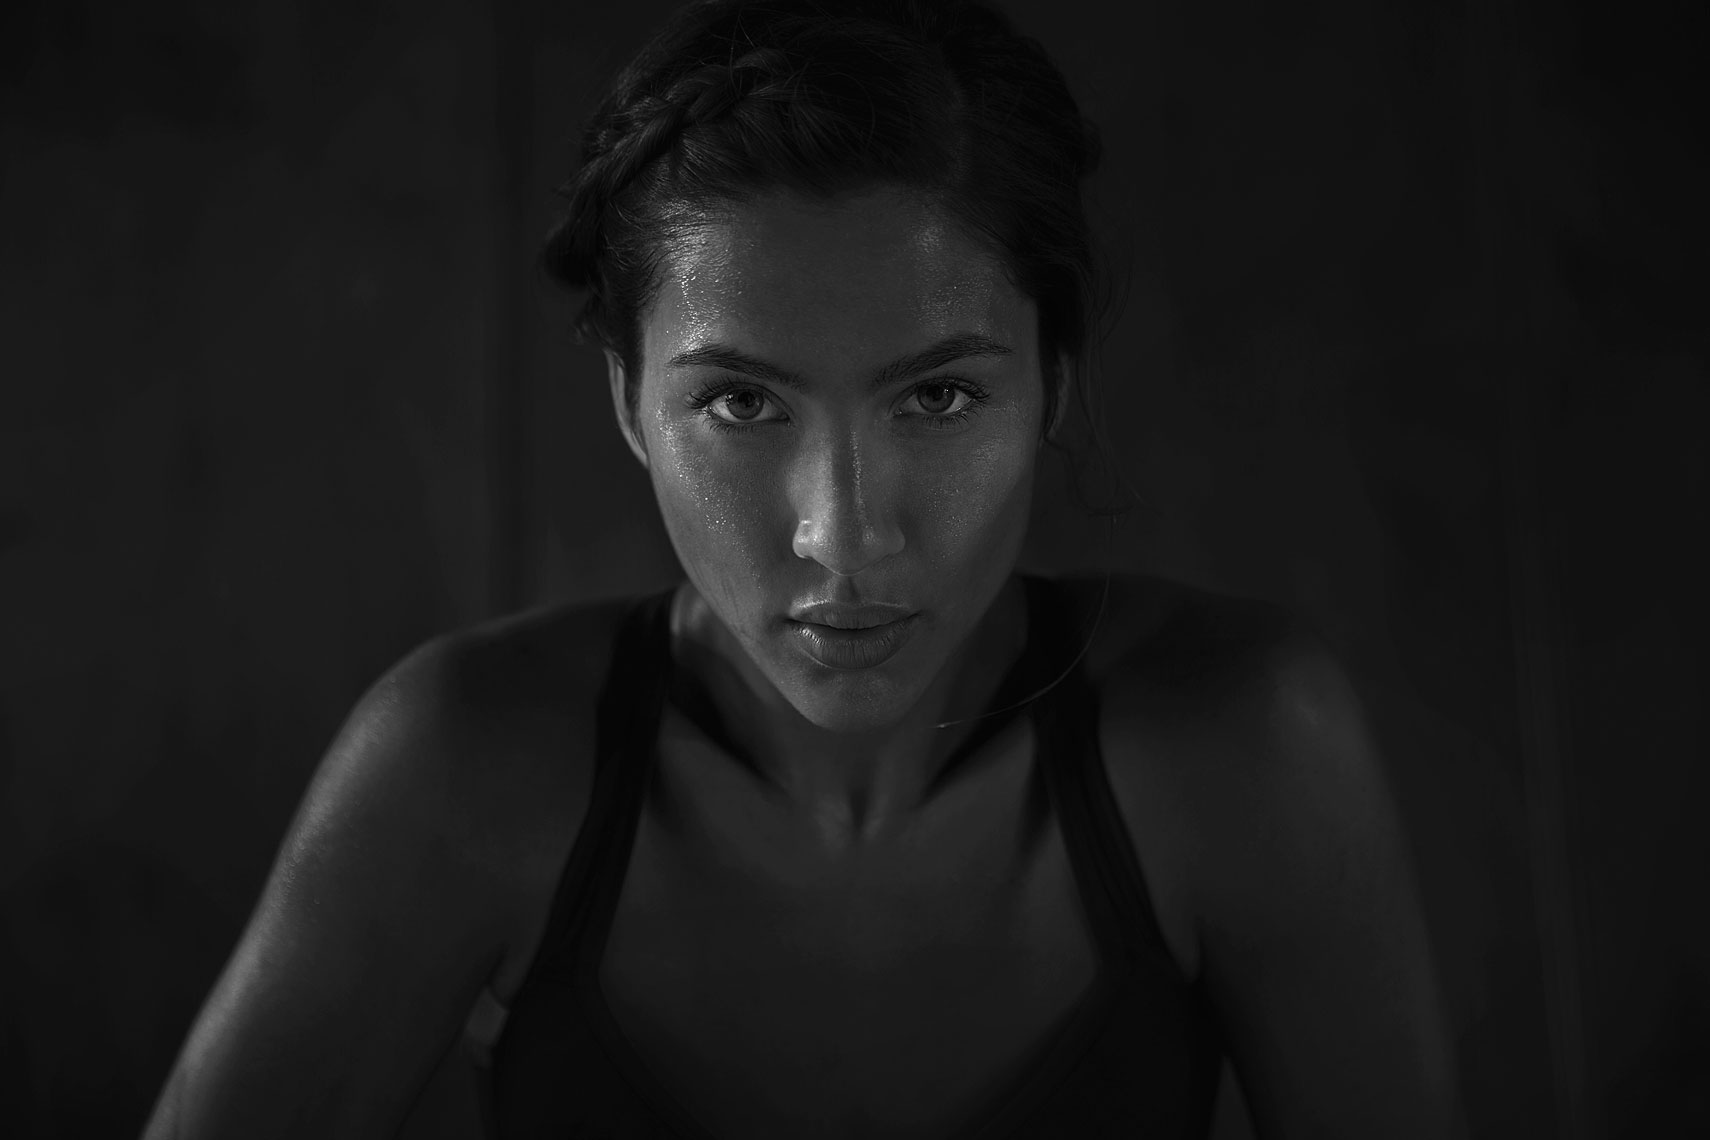 Black and white portrait, female athlete